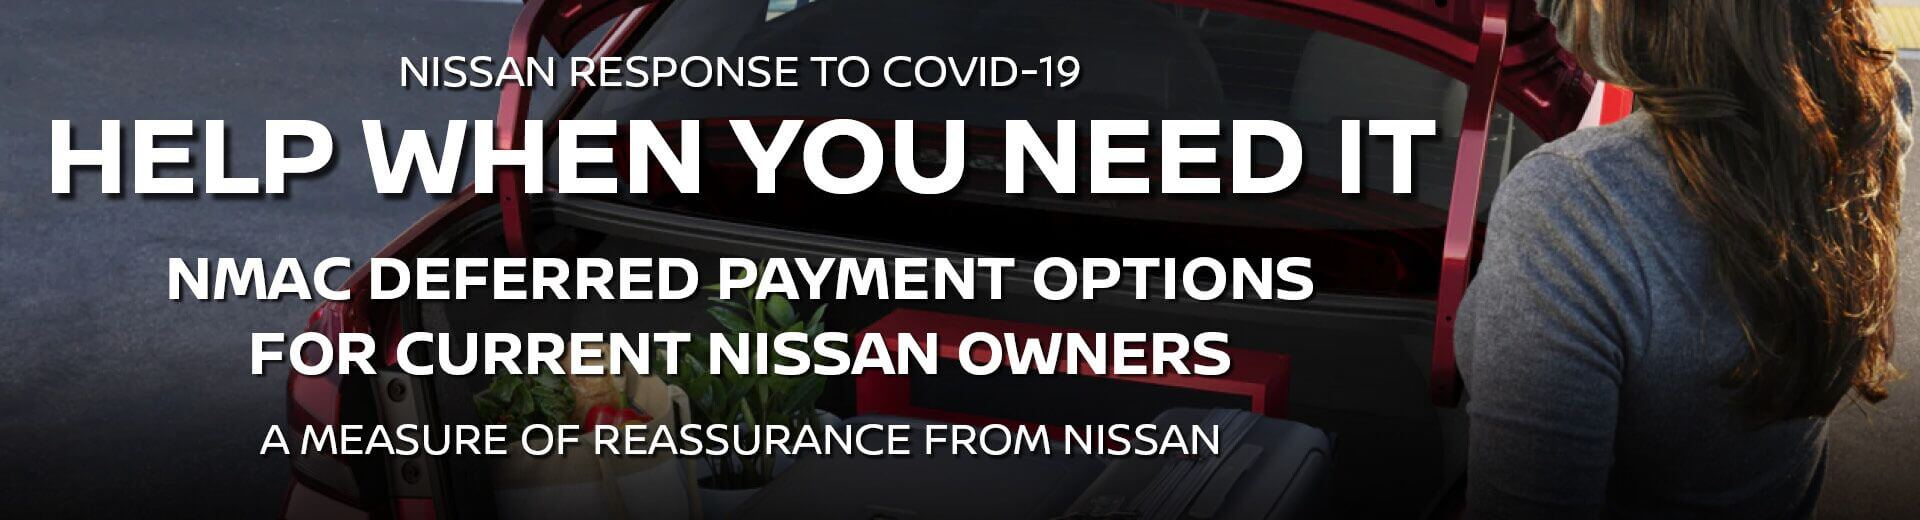 Nissan Response to COVID-19 | NMAC Deferred Payment Options for Current Nissan Owners